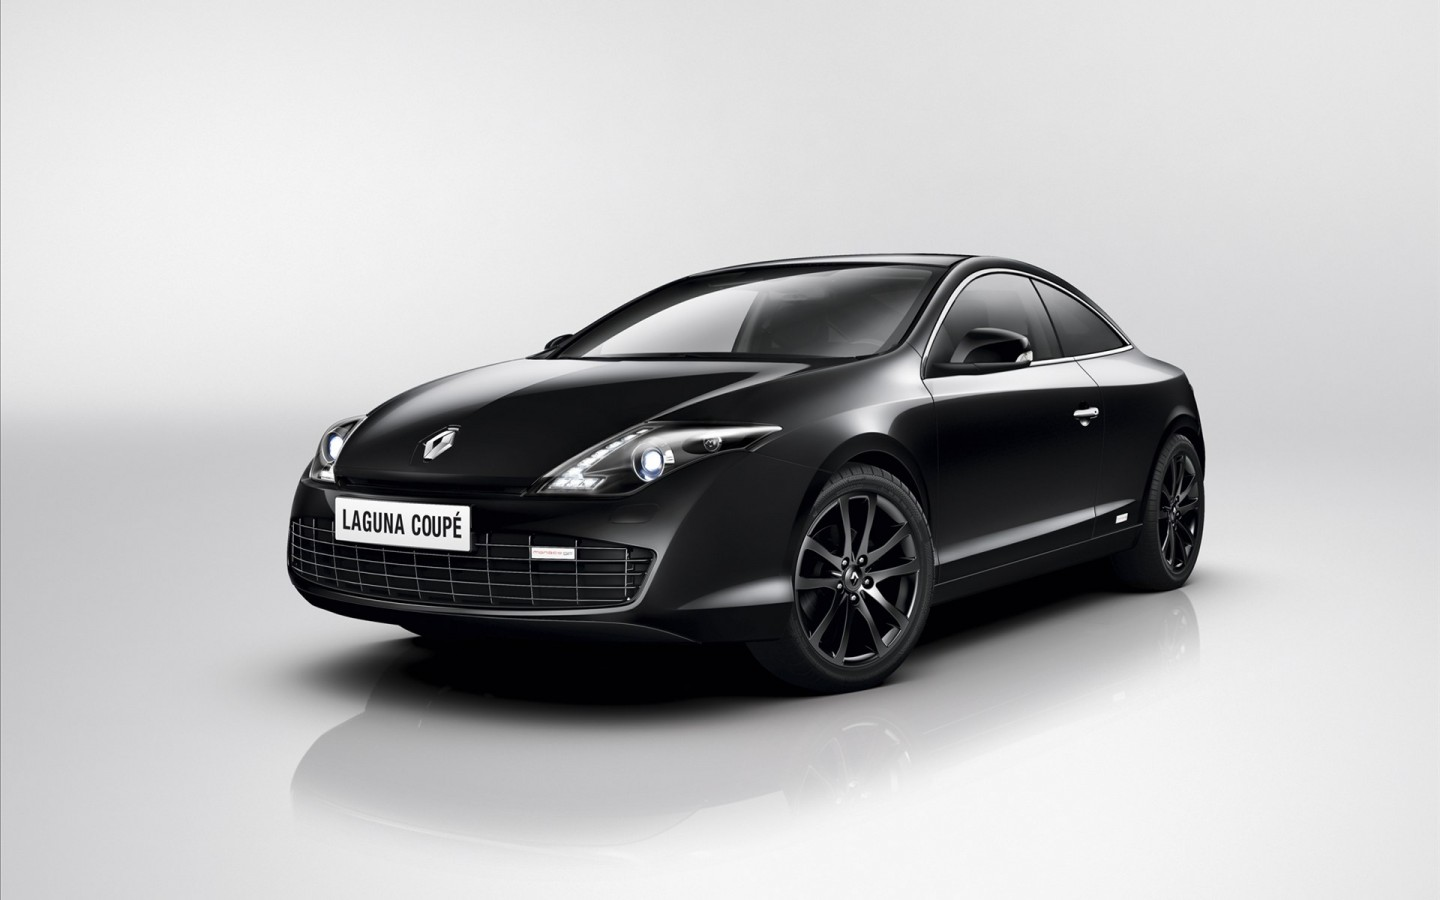 renault laguna coupe 2012 2 wallpaper hd car wallpapers. Black Bedroom Furniture Sets. Home Design Ideas